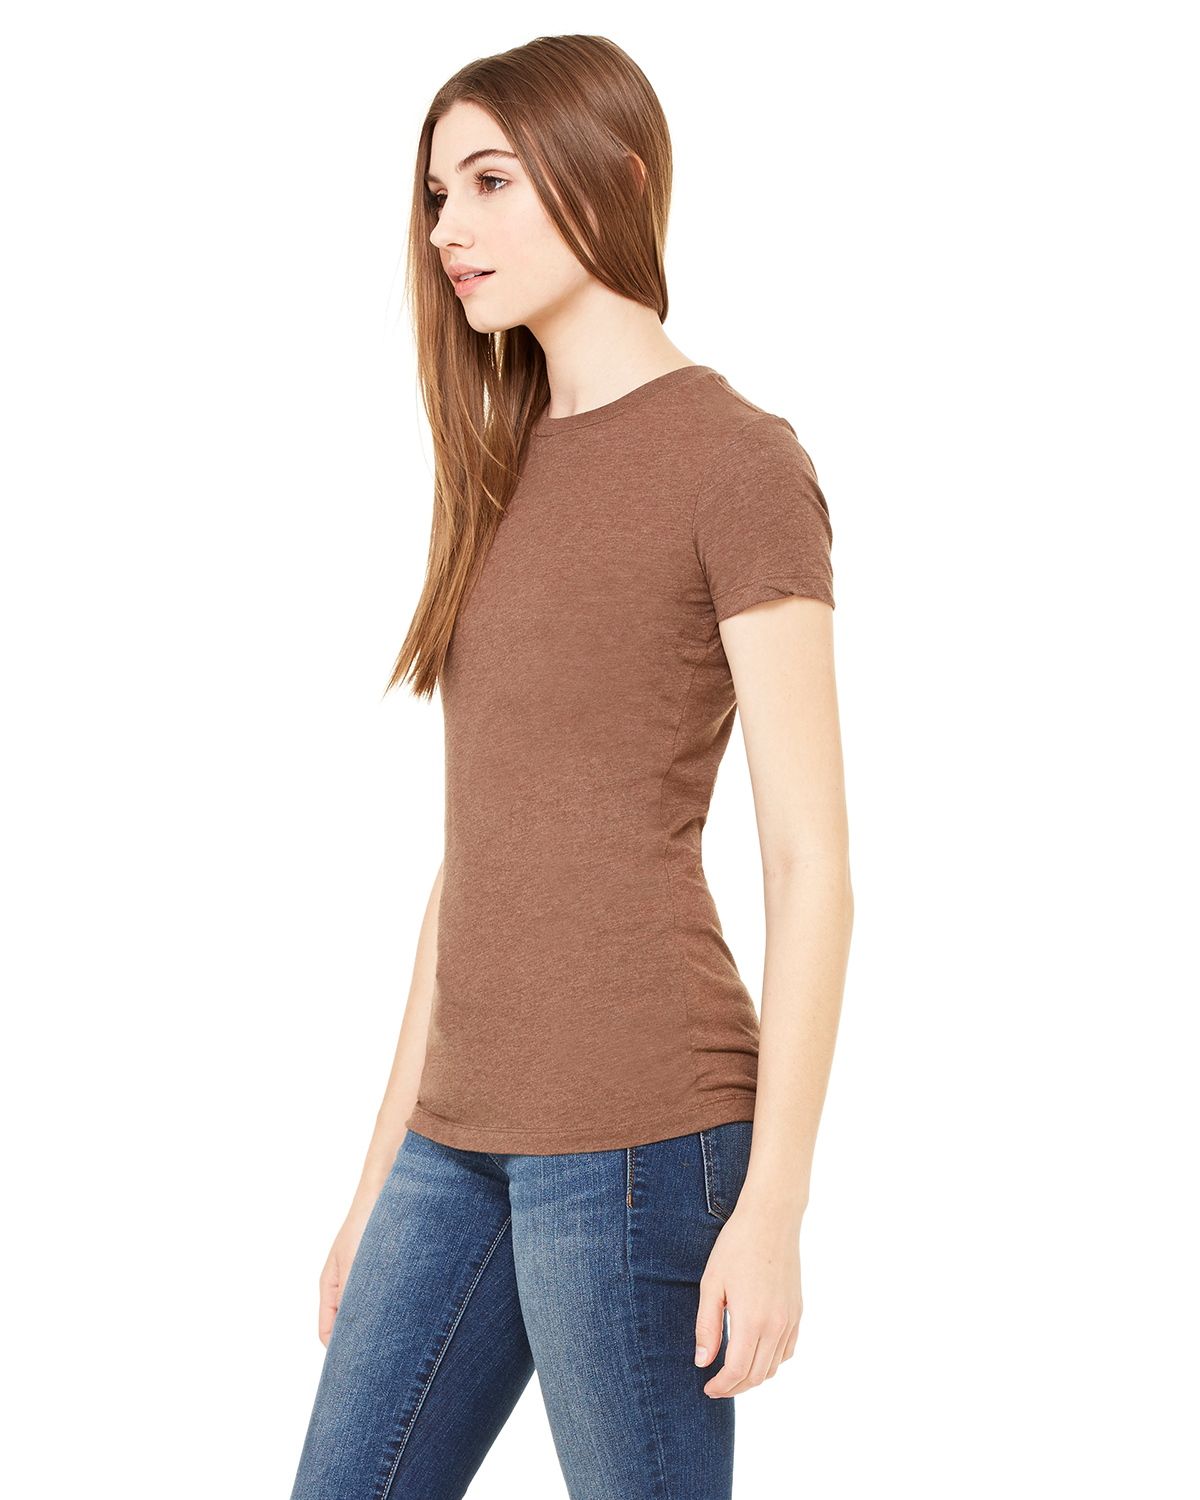 Bella-Canvas-Womens-The-Favorite-T-Shirt-6004-Size-S-2XL thumbnail 65